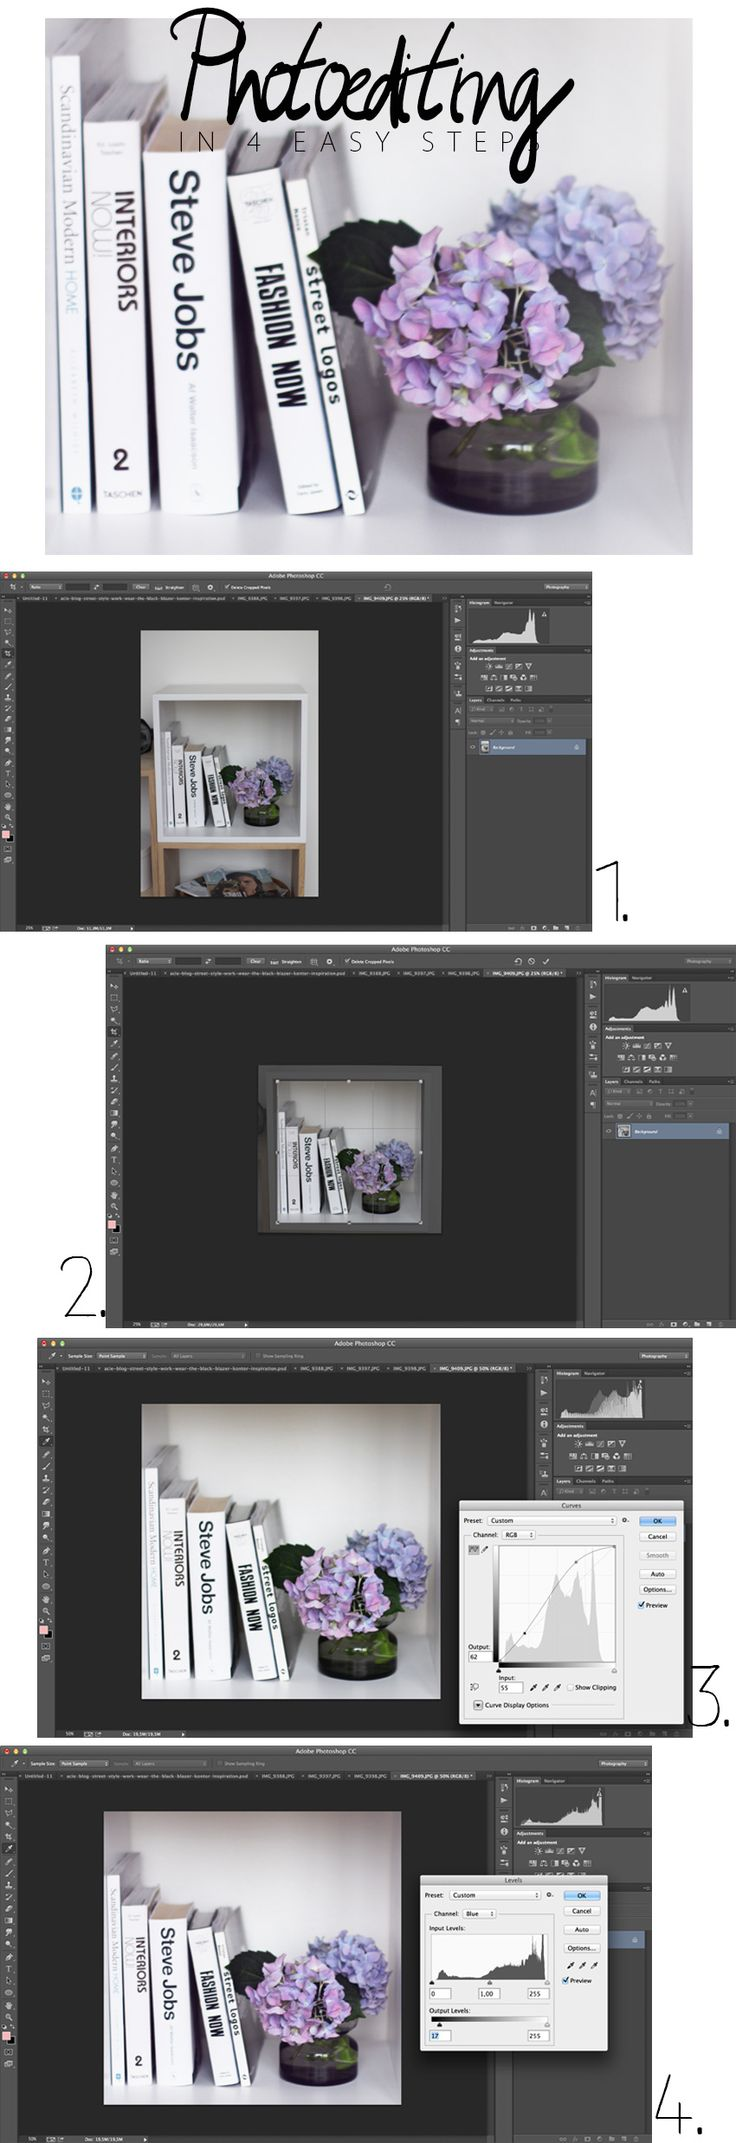 how-to-edit-your-photos-in-4-easy-steps-billederedigering-blog-photoshop-tips-acie-blog